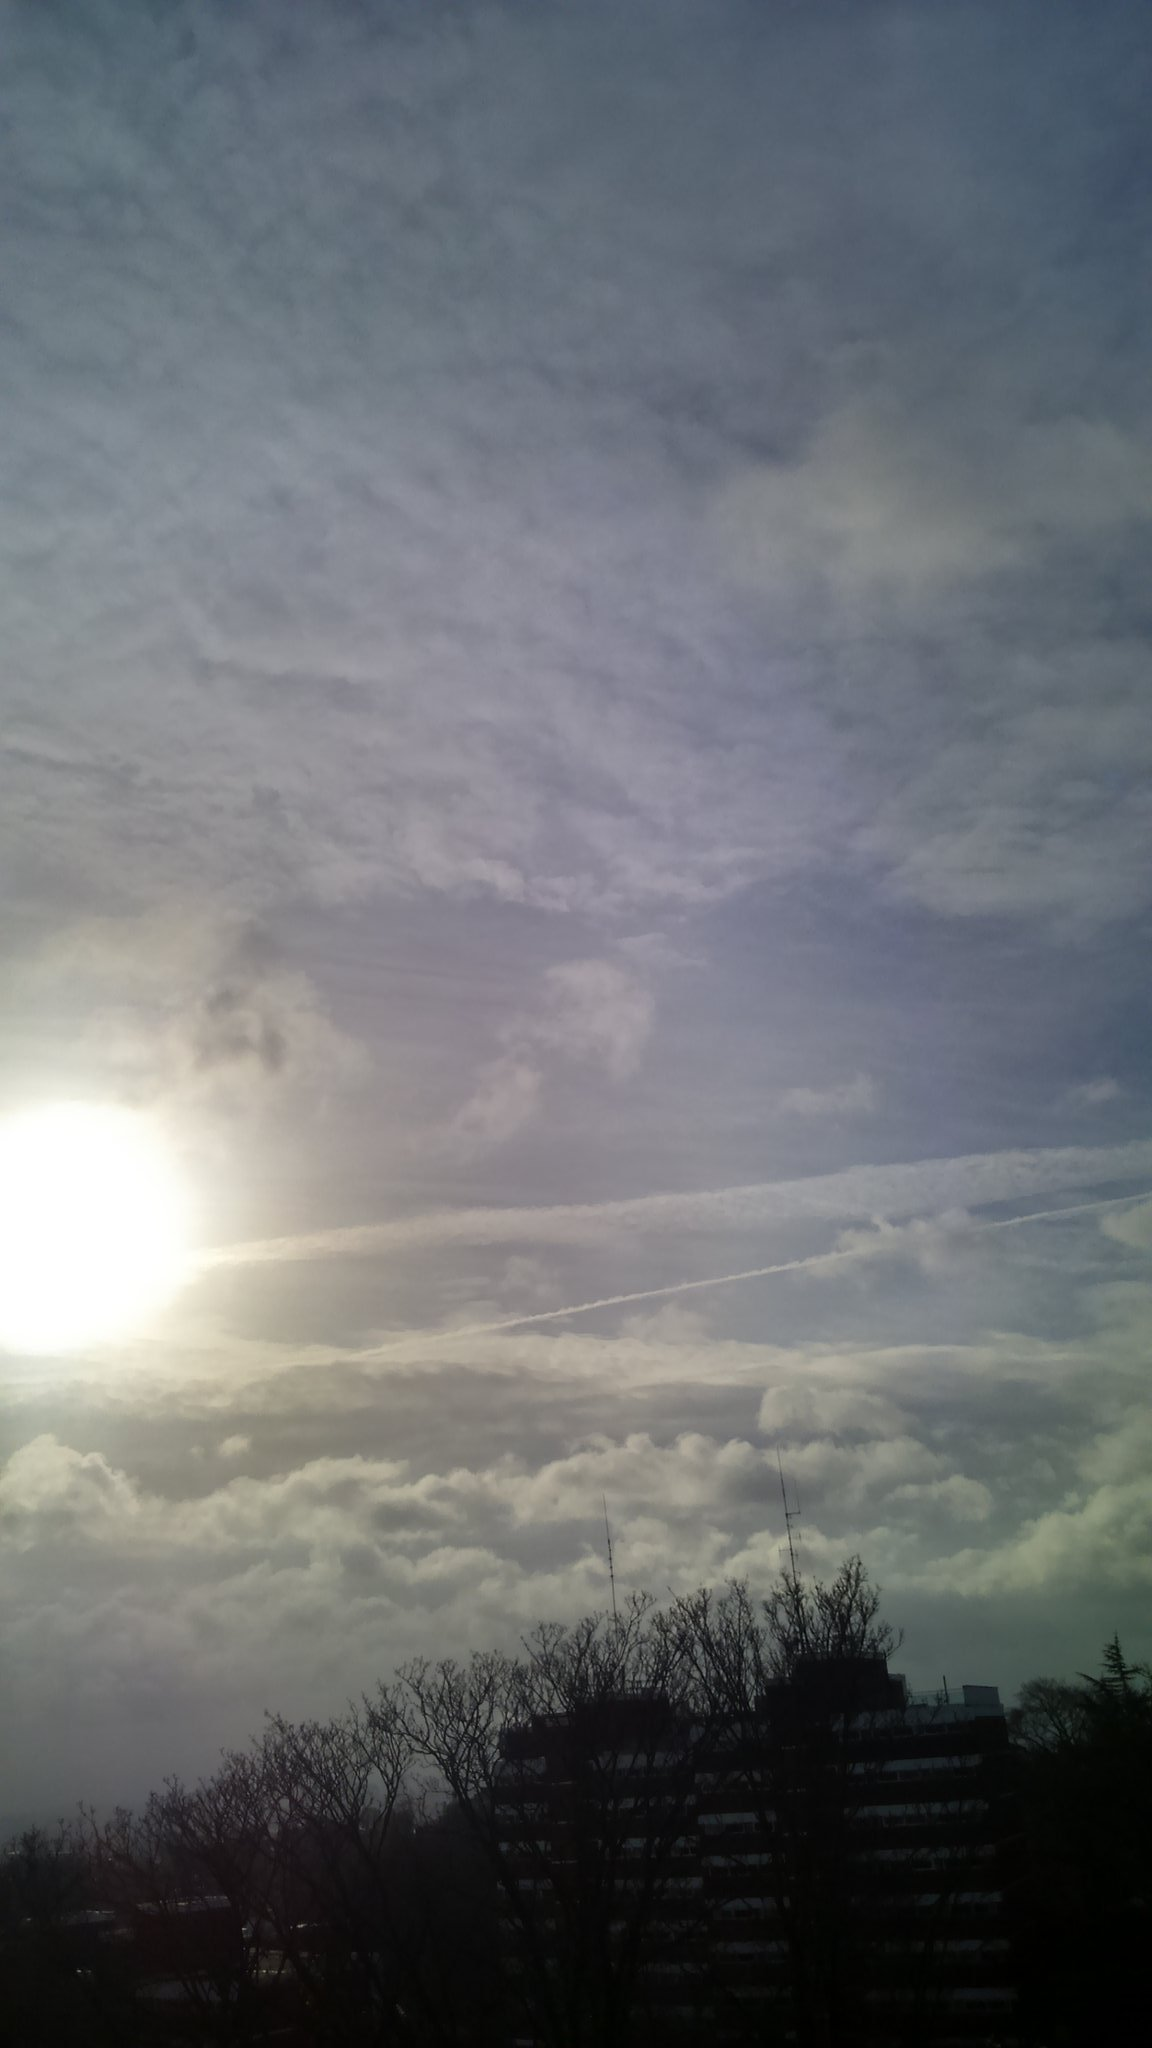 Sun halo? Stop chatting shit It's heavy #chemtrails Wake up!! https://t.co/5fP3UA0wTm #OpChemtrails